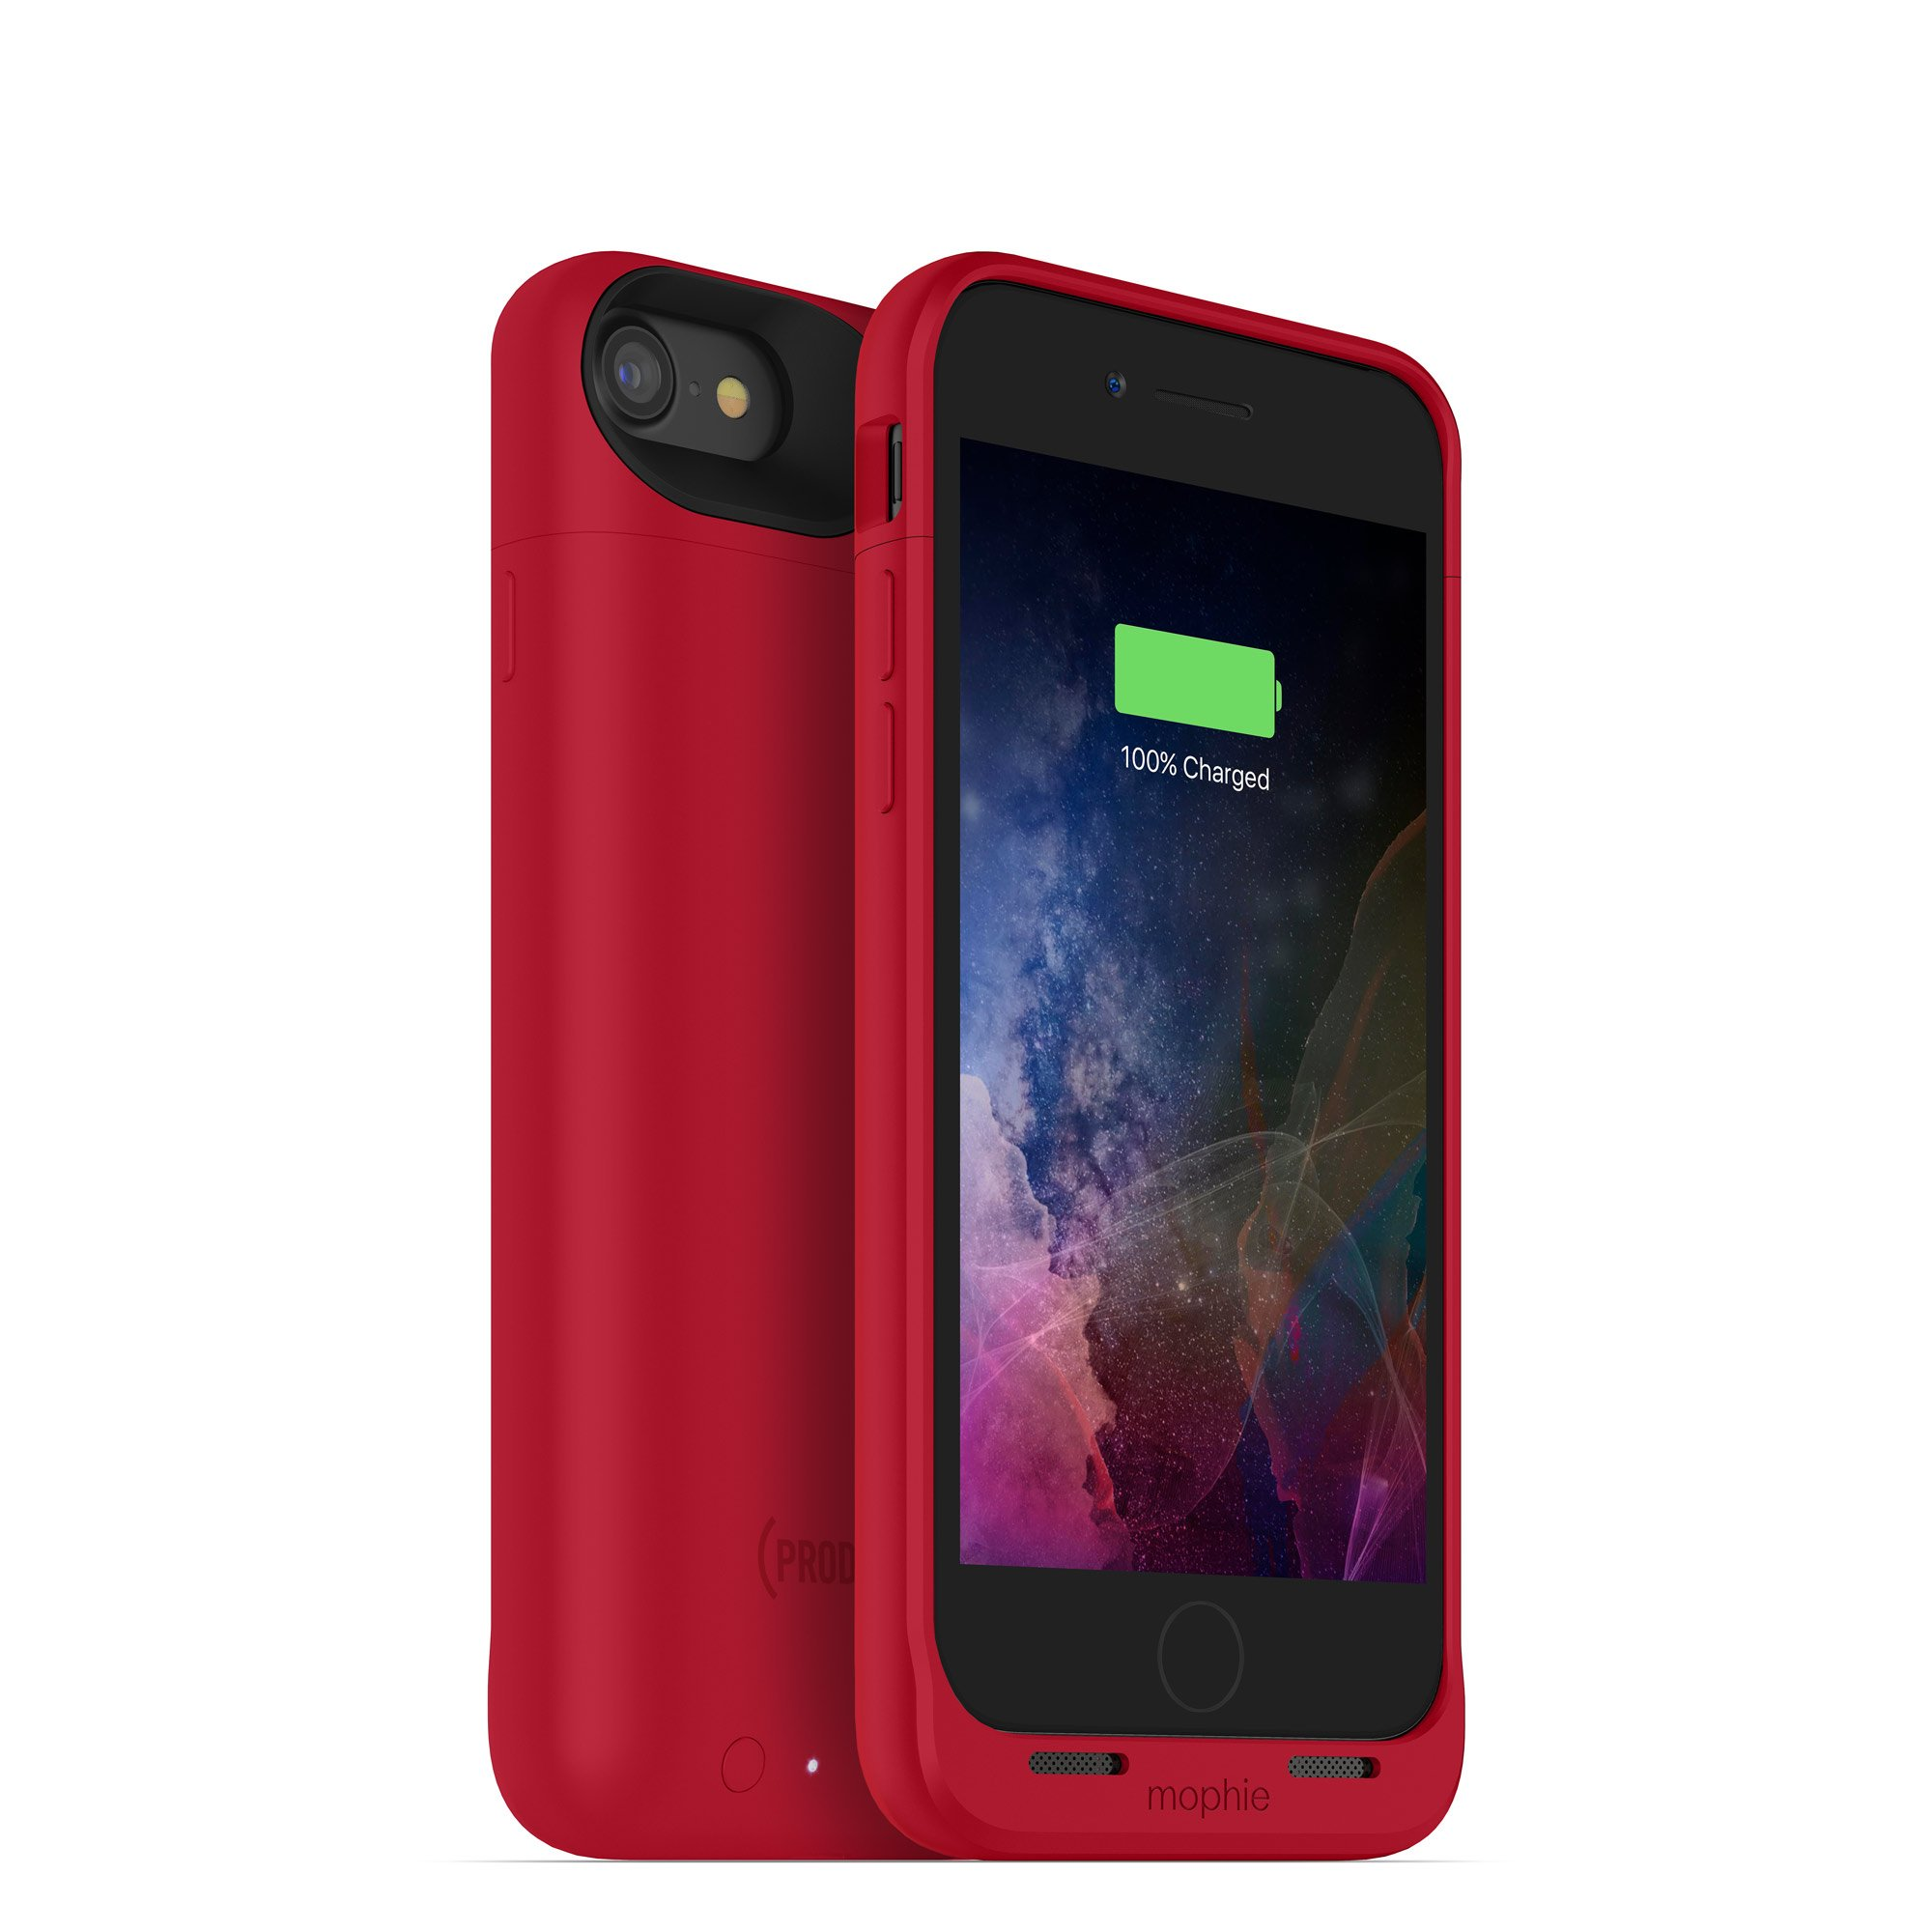 mophie juice pack wireless  - Charge Force Wireless Power - Wireless Charging Protective Battery Pack Case for Apple iPhone 8 and iPhone 7 - (PRODUCT)RED by ZAGG